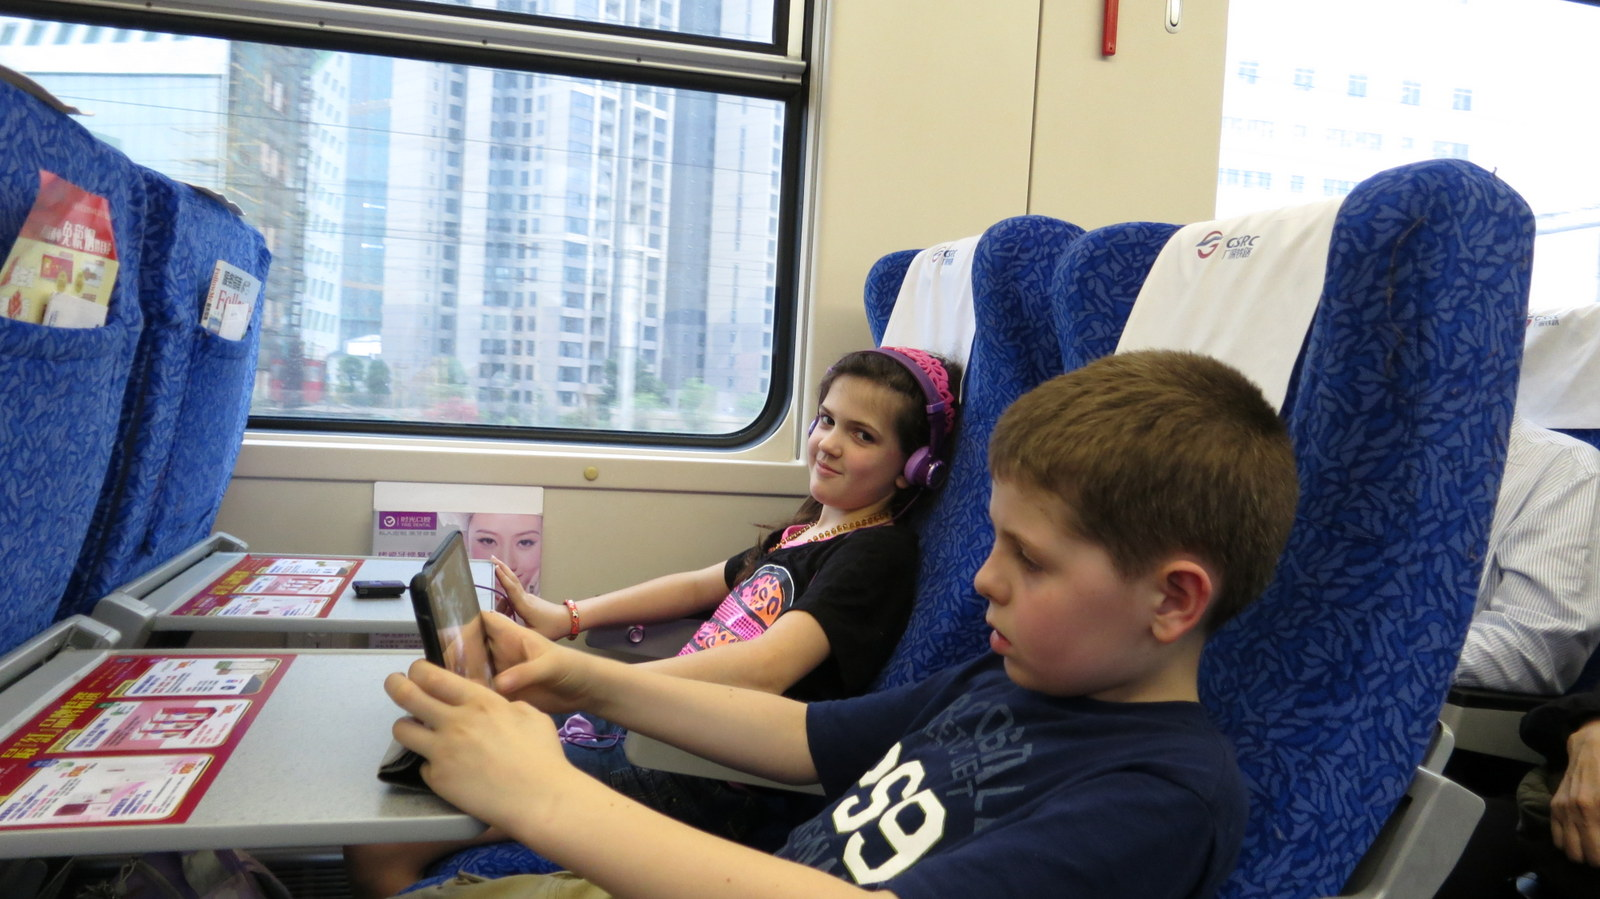 Abby and our Jersey friend Aiden on the train to Hong Kong.